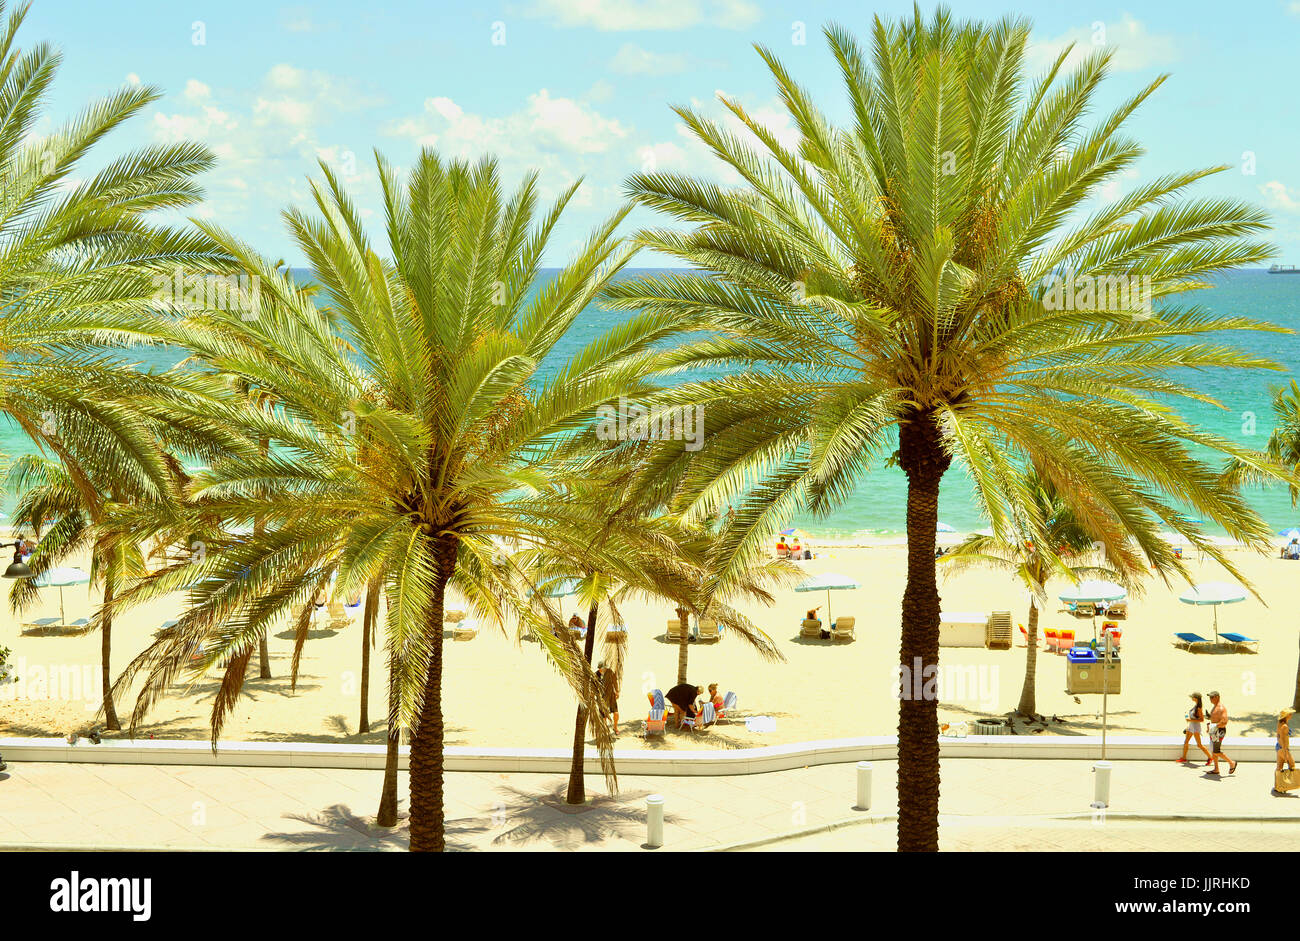 Palm trees on Fort Lauderdale Beach Stock Photo